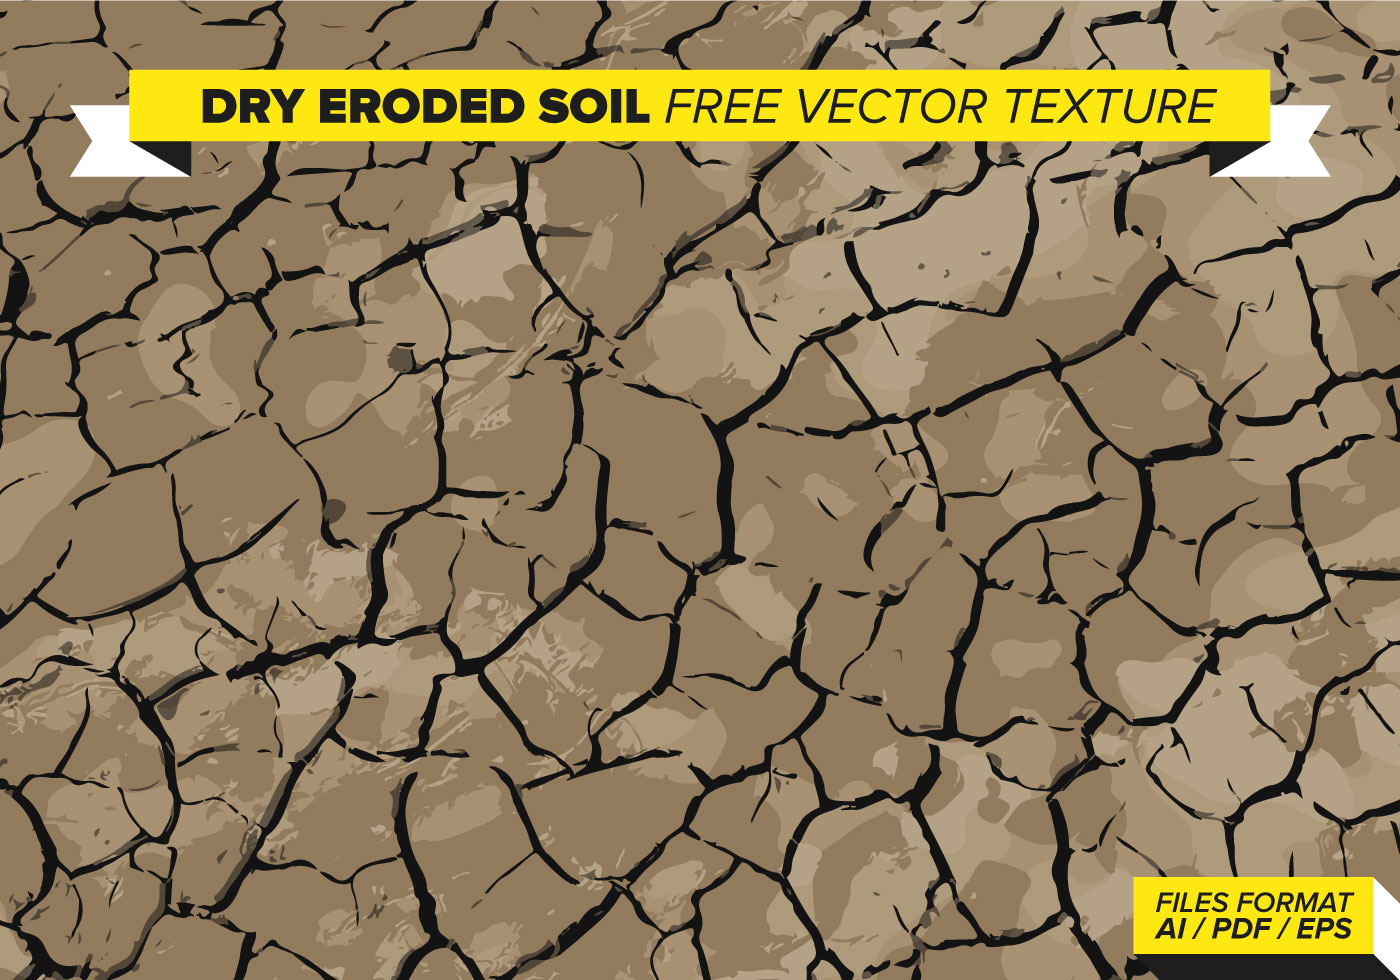 Dry Eroded Soil Vector Texture - Download Free Vector Art ...